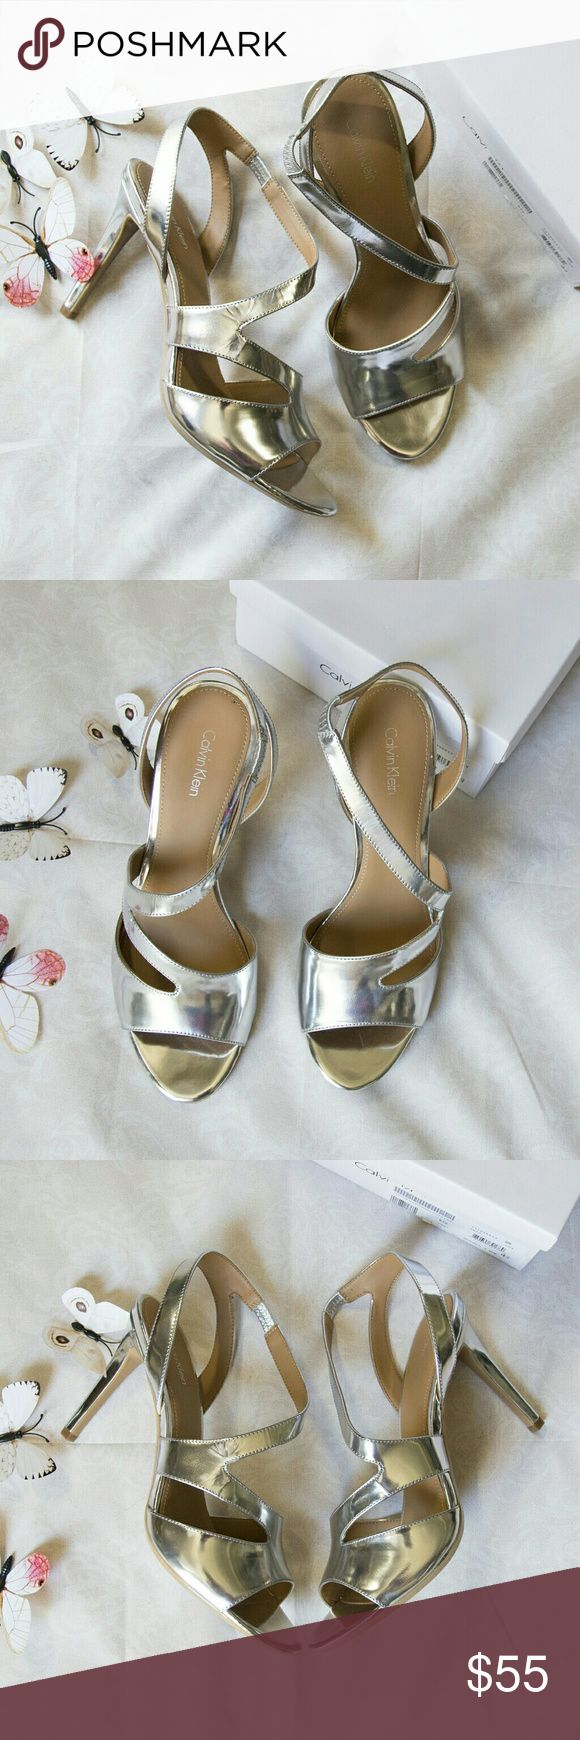 "New CALVIN KLEIN metallic silver sandal heels New in box CALVIN KLEIN sz 10M metallic silver sandal heels MSRP $109  size: 10M color: silver  - Open toe - Cutout detail - Asymmetrical vamp strap - Slip-on - Approx. 4.75"" heel - Imported Calvin Klein Shoes Heels"